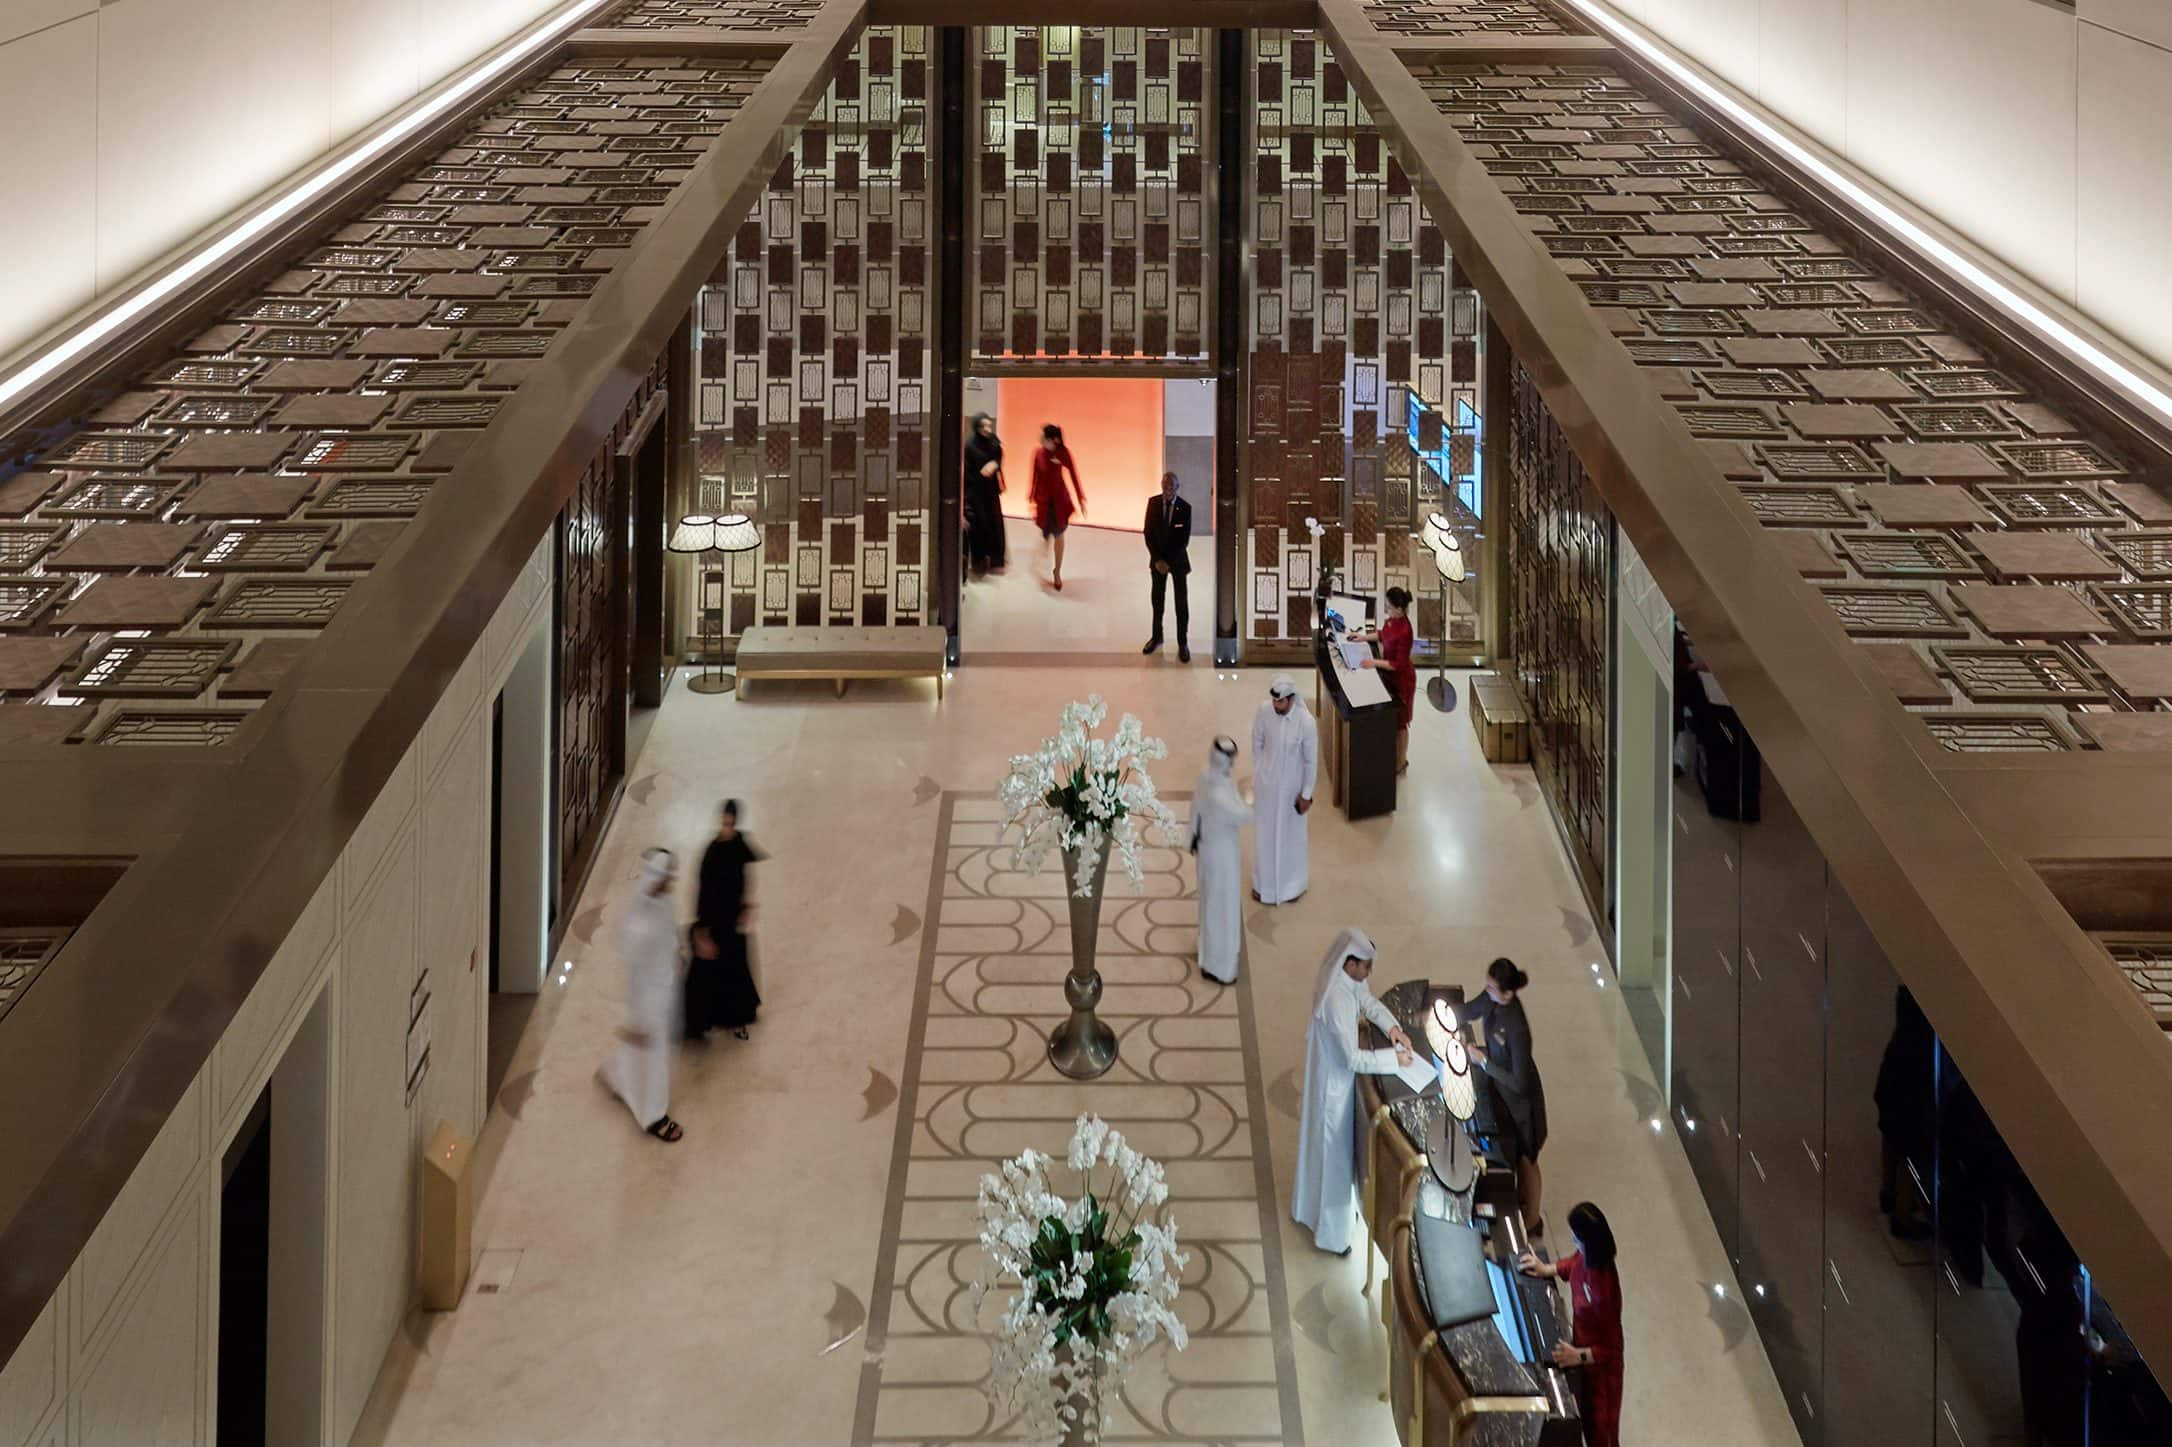 hotel lobby with guests